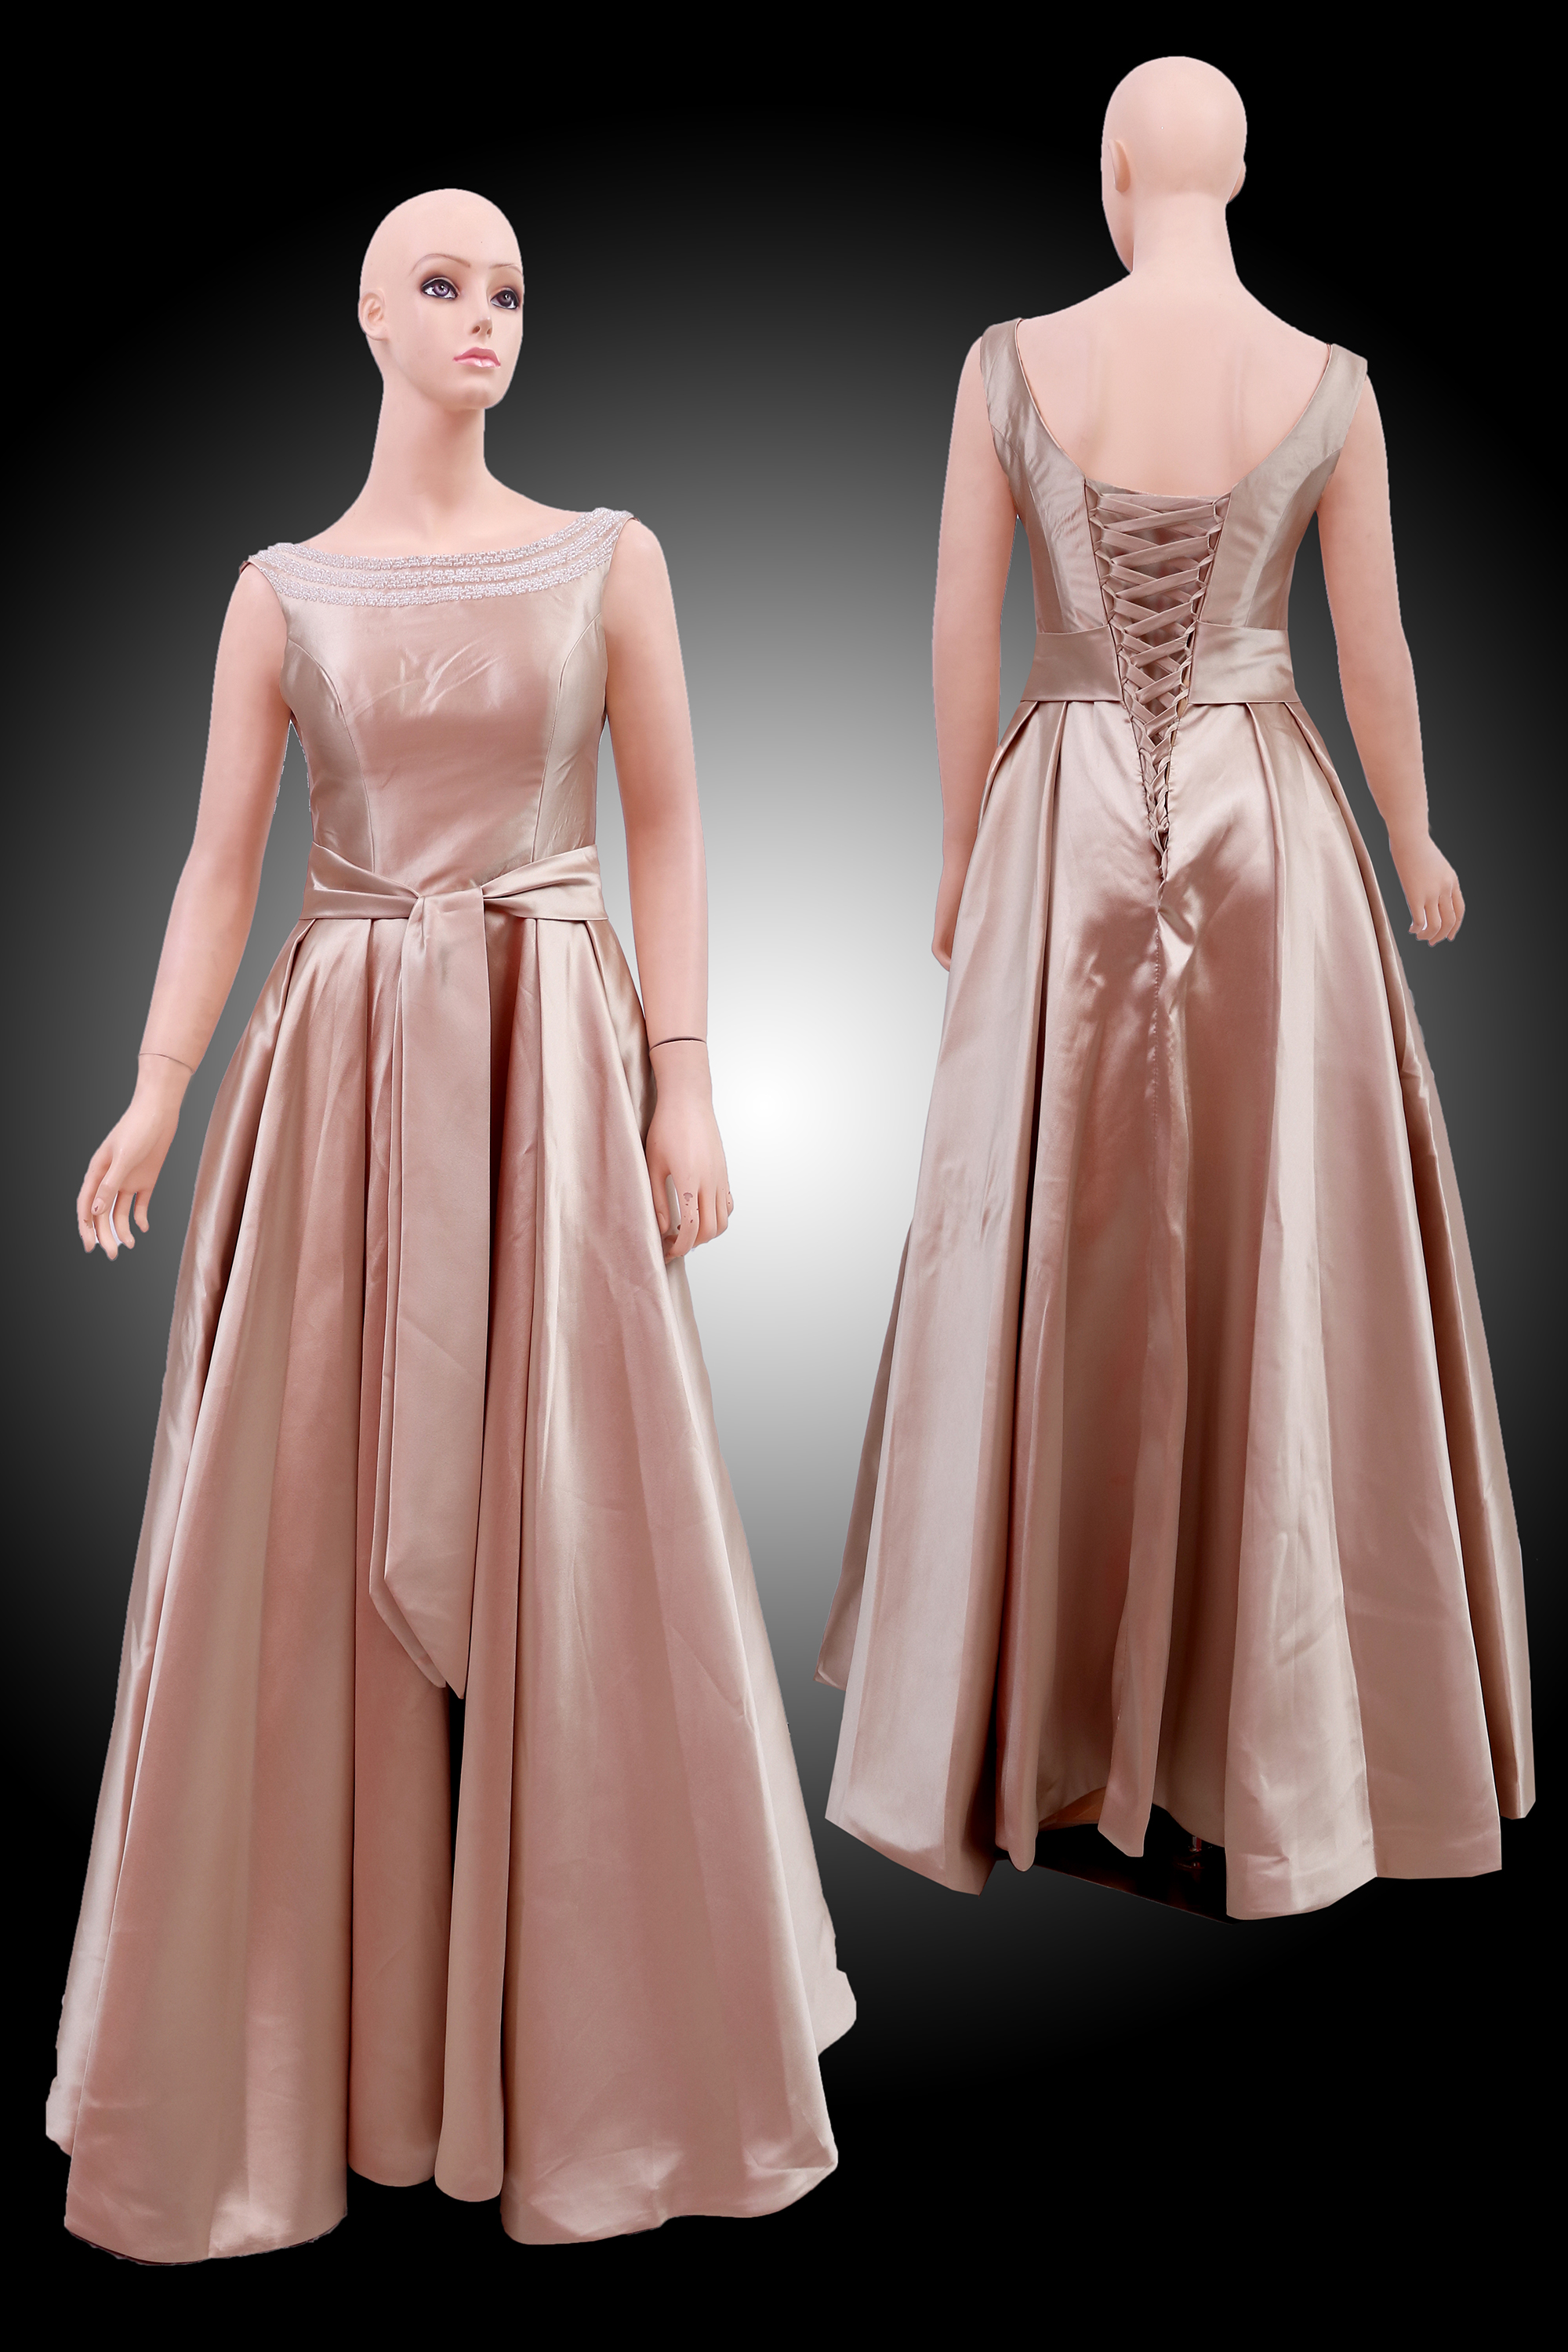 Gaun Pesta Gold 31815 C Sewa Jual Baju Gaun Pesta Bridesmaid Dress